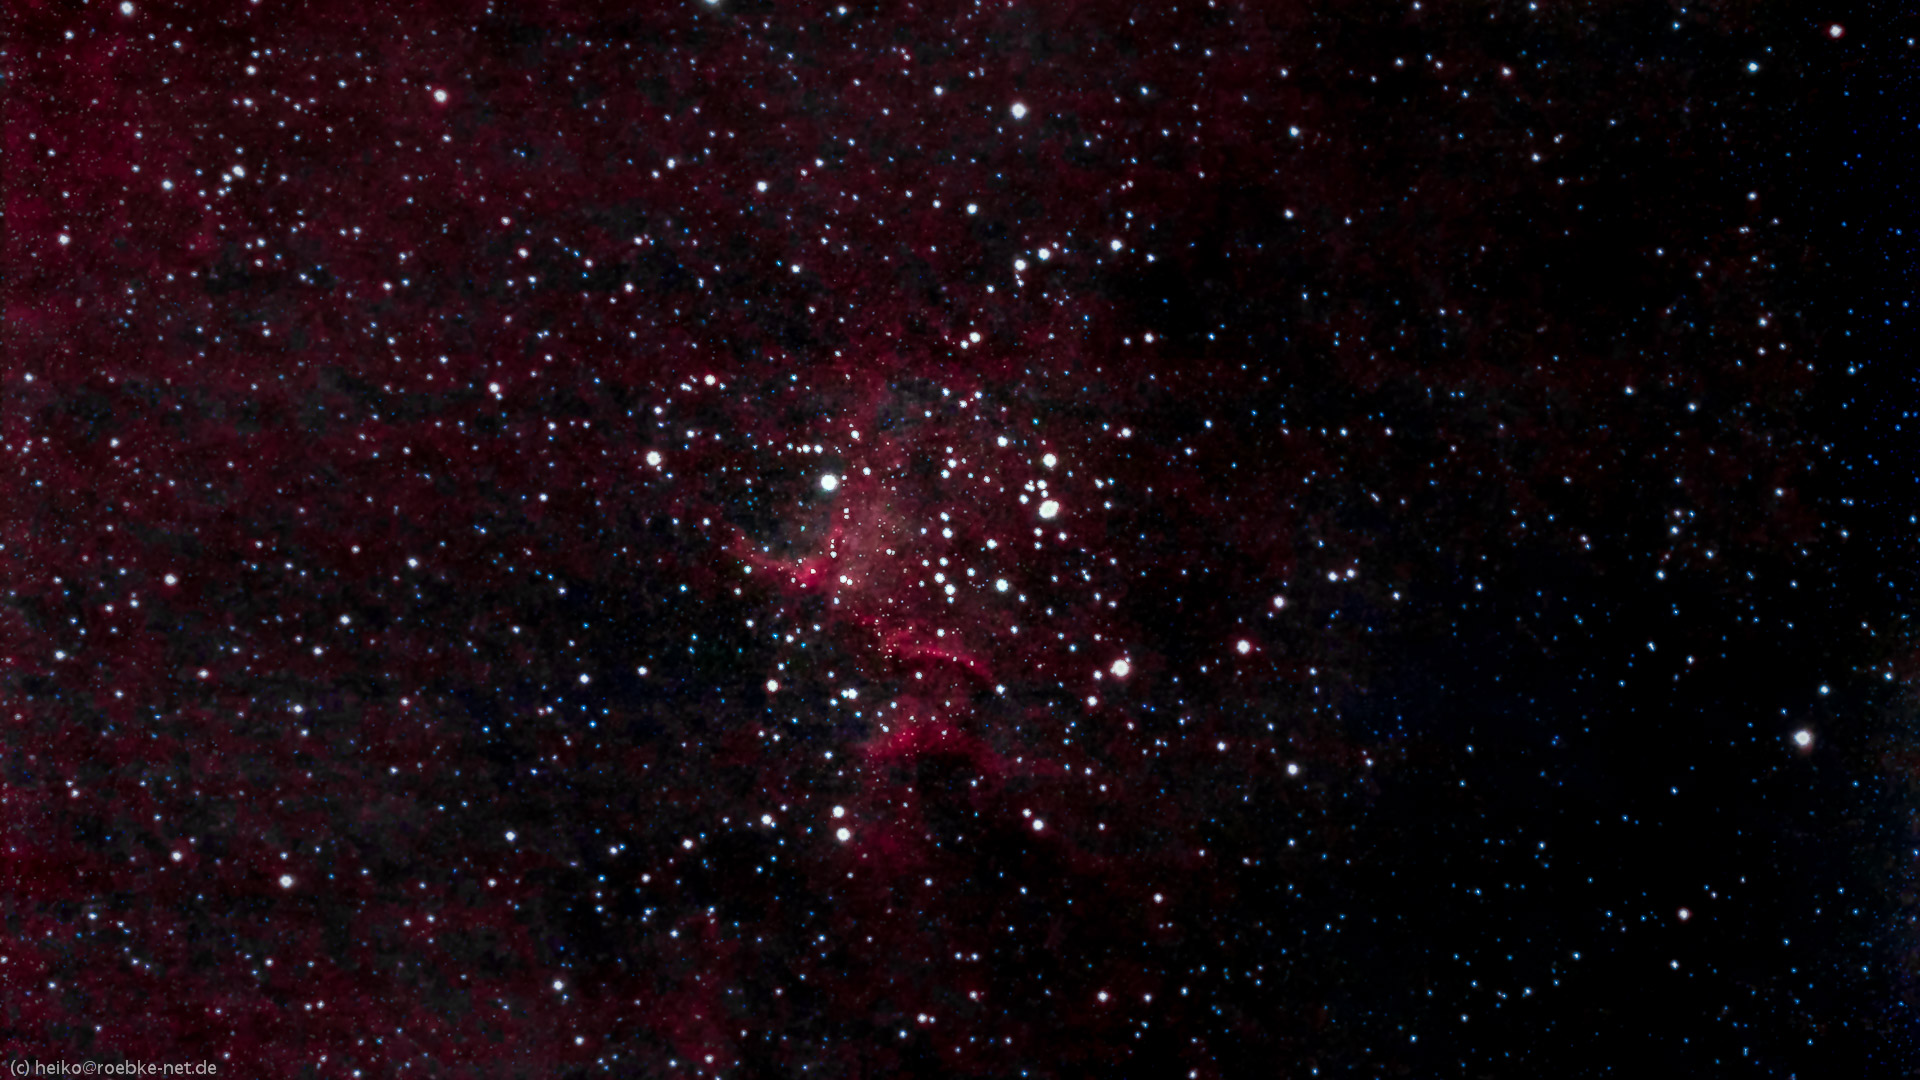 Herznebel IC1805 (Heart Nebula)